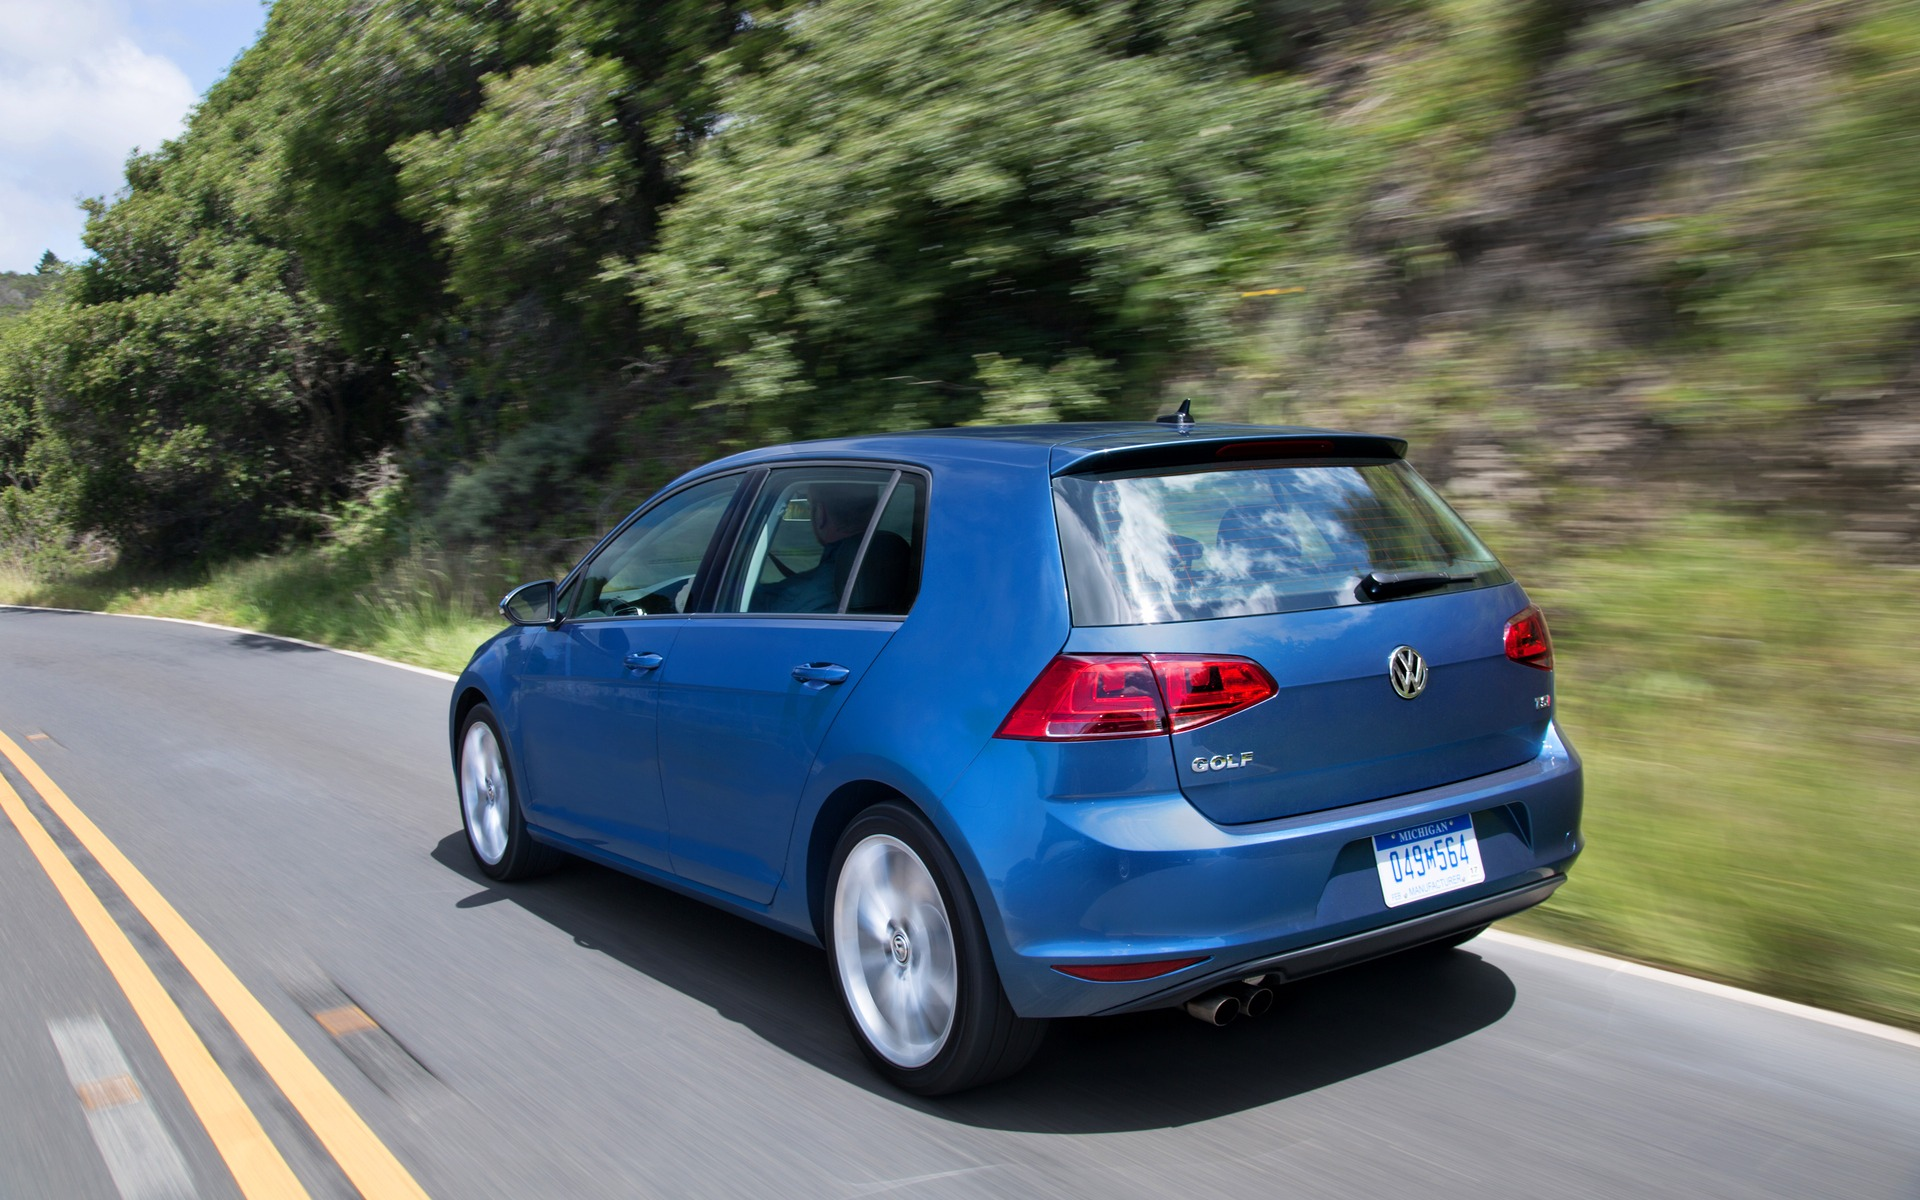 2015 Volkswagen Golf Tsi M Q B Spells Success For New